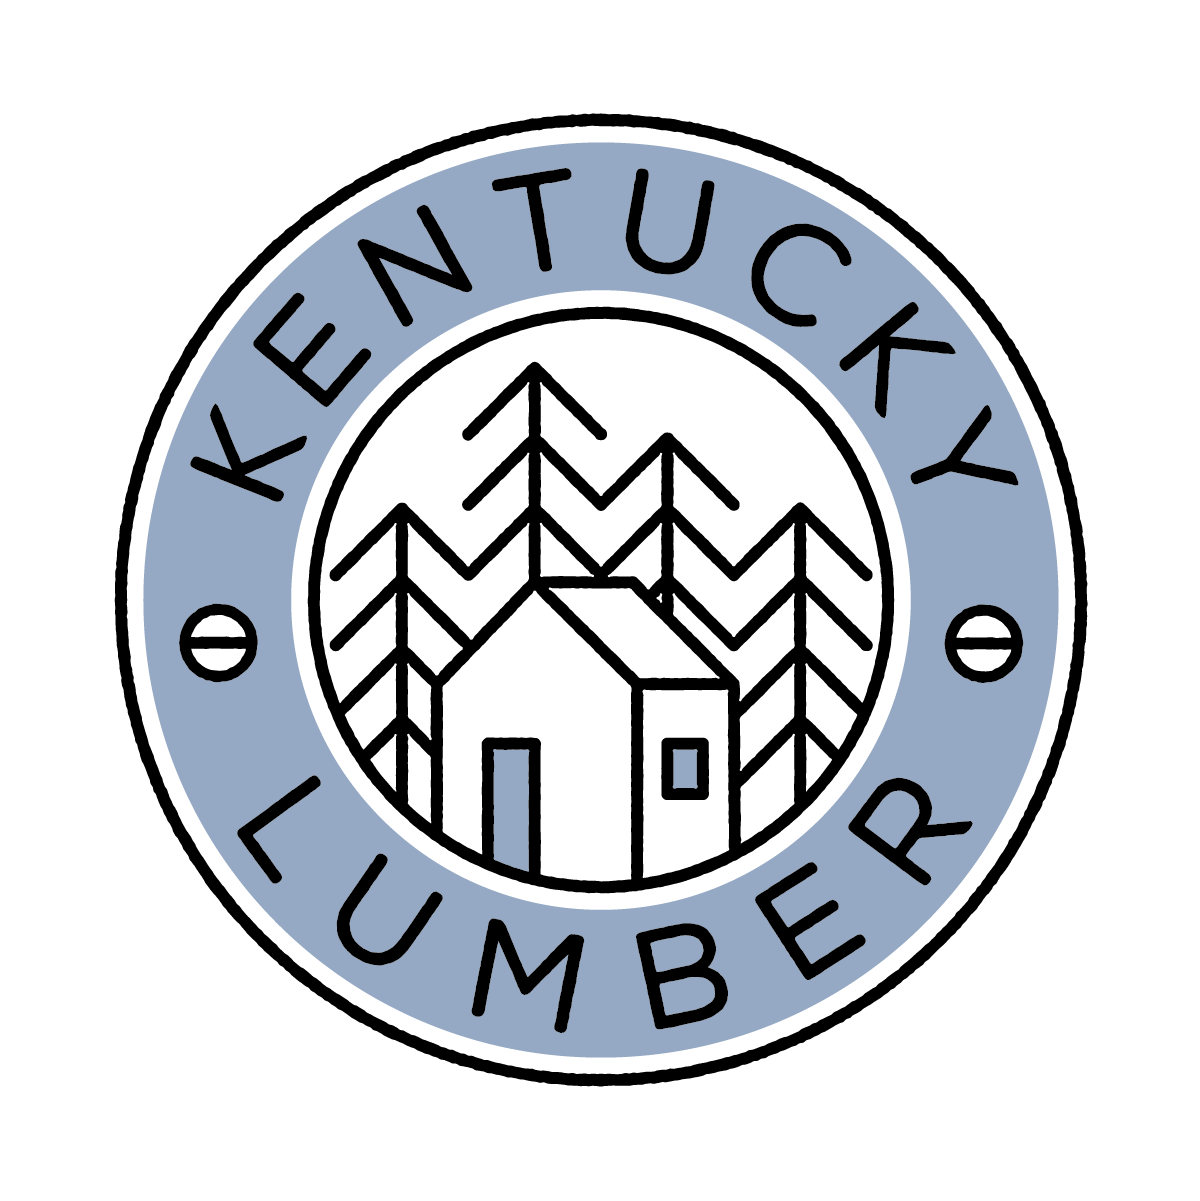 Kentucky Lumber